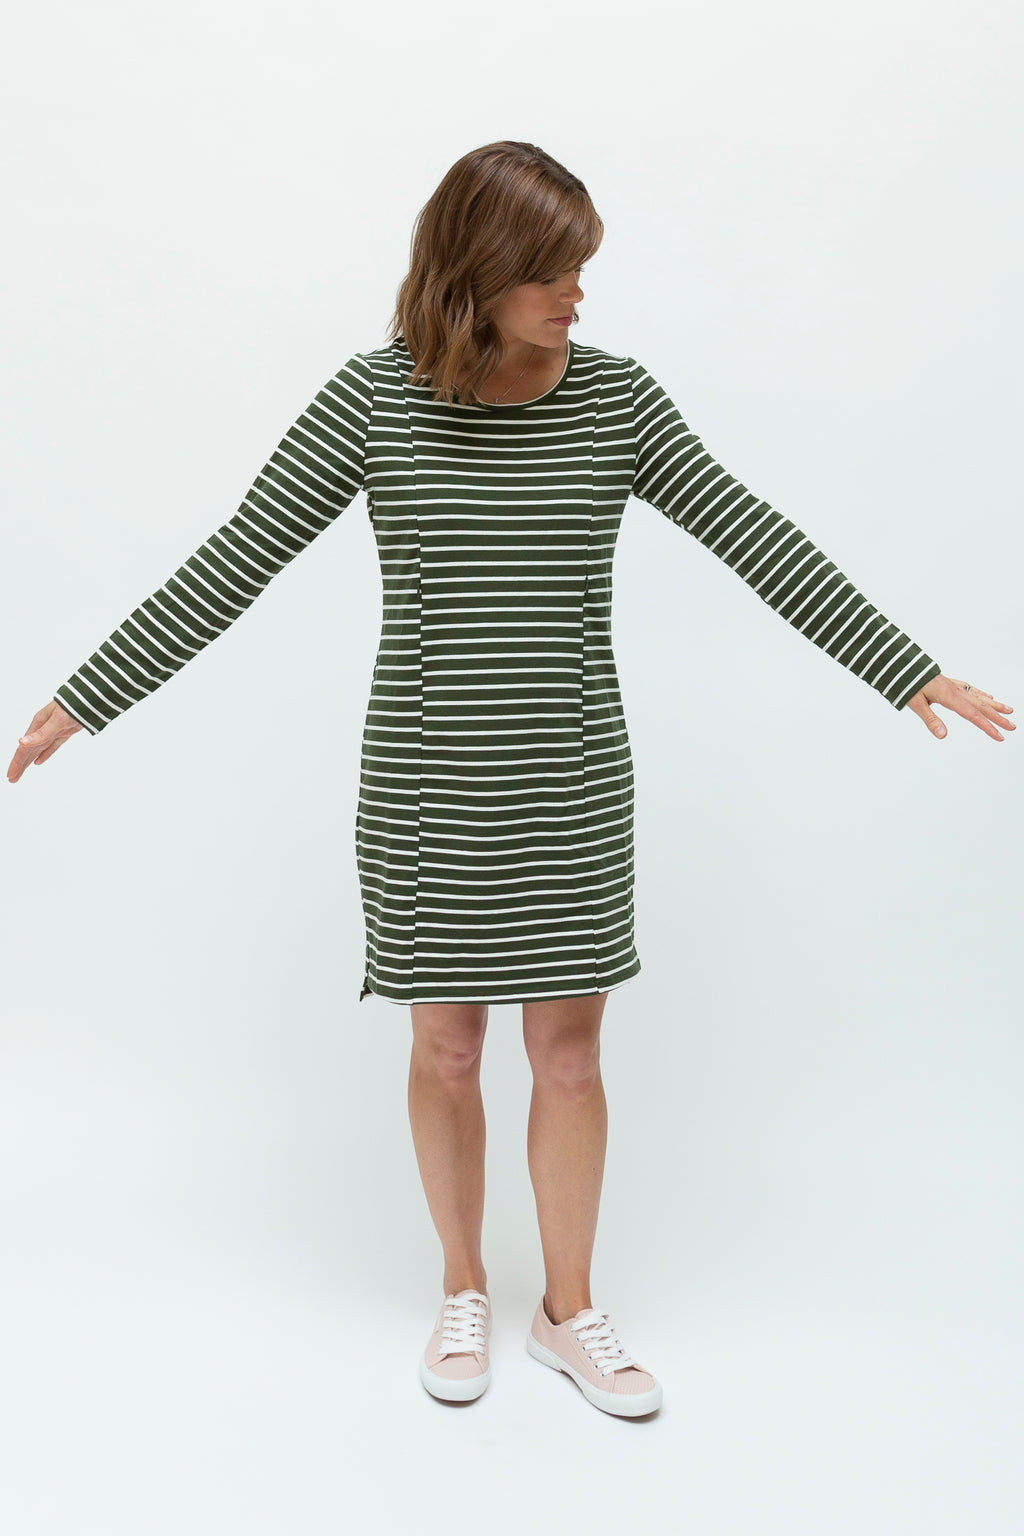 Stripe Dress - Olive & White